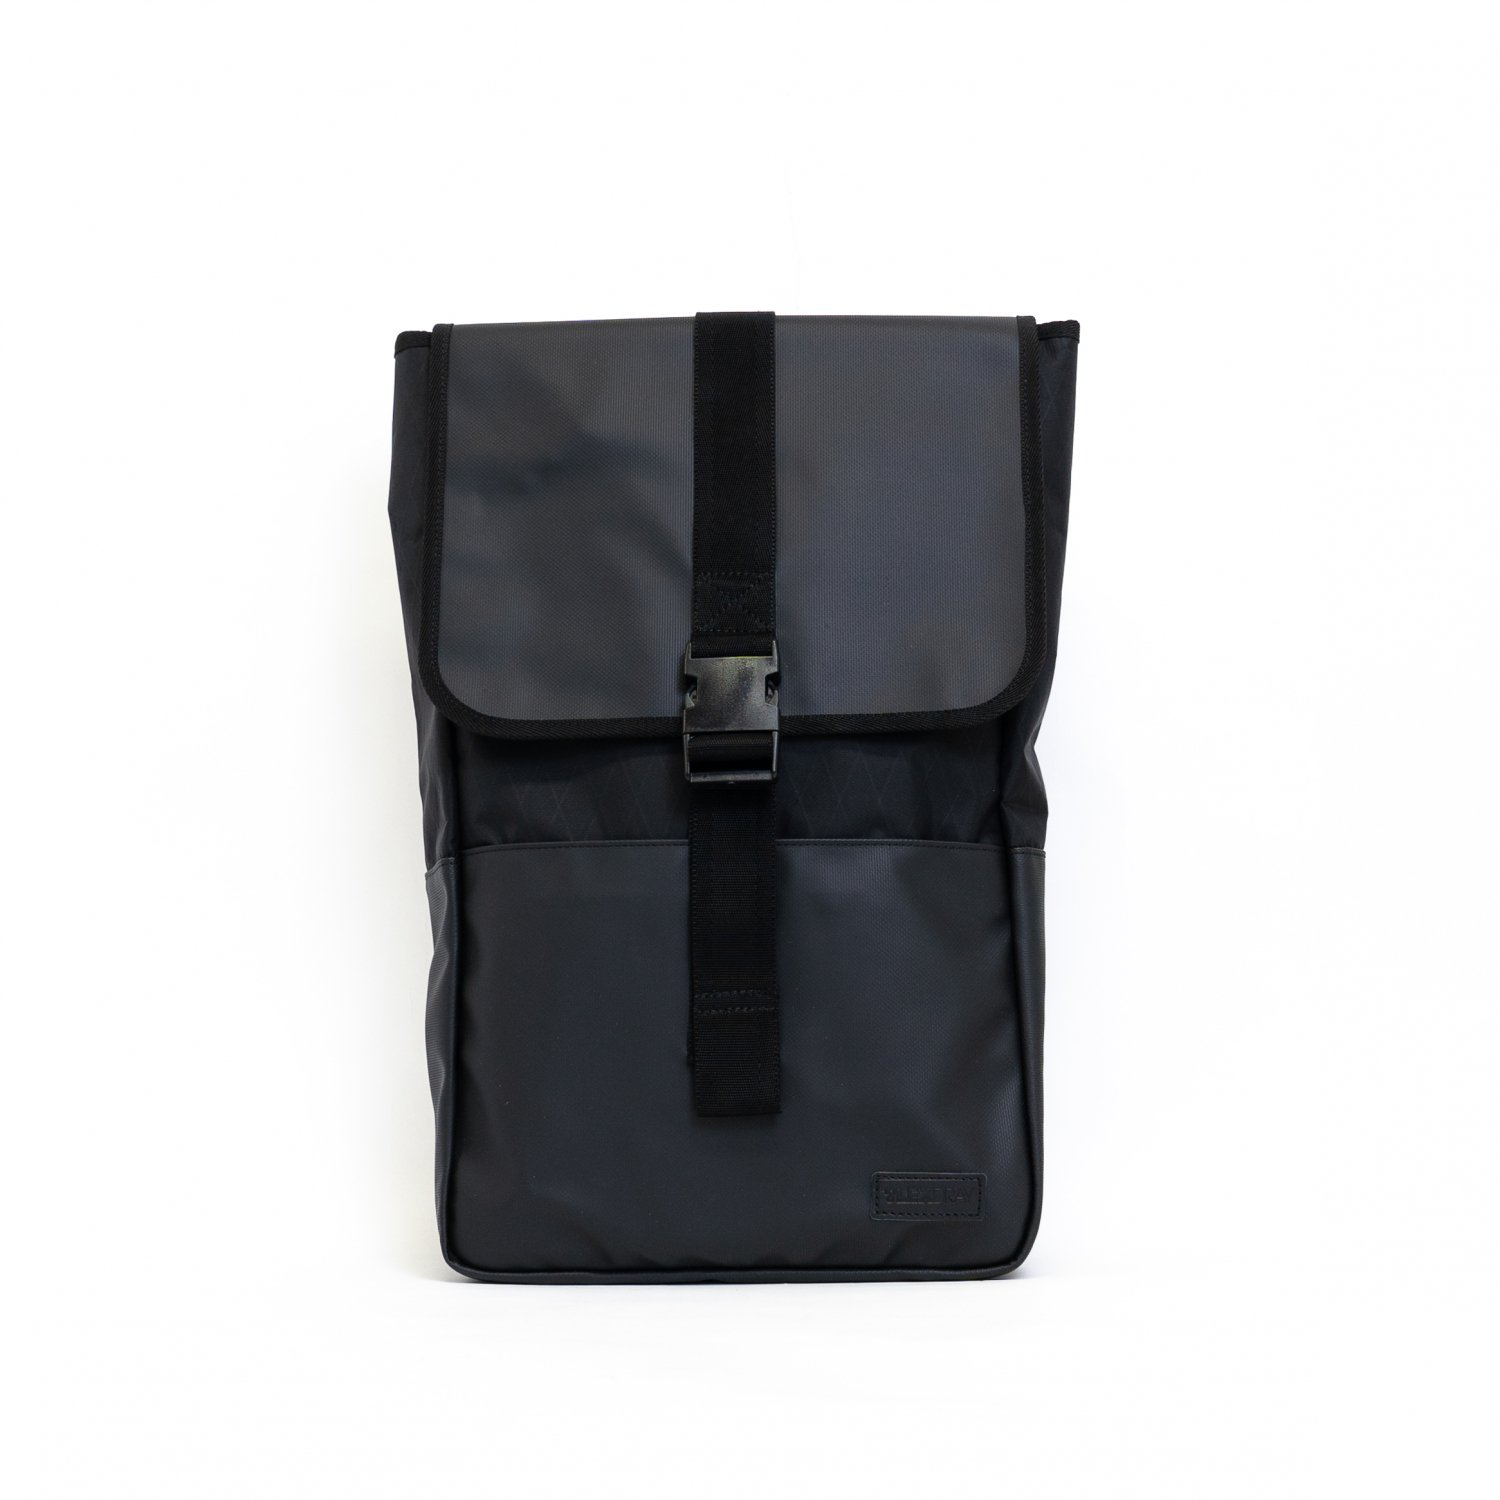 LEXDRAY * Toronto Pack - made in Japan BLK COLLECTION -  * Black